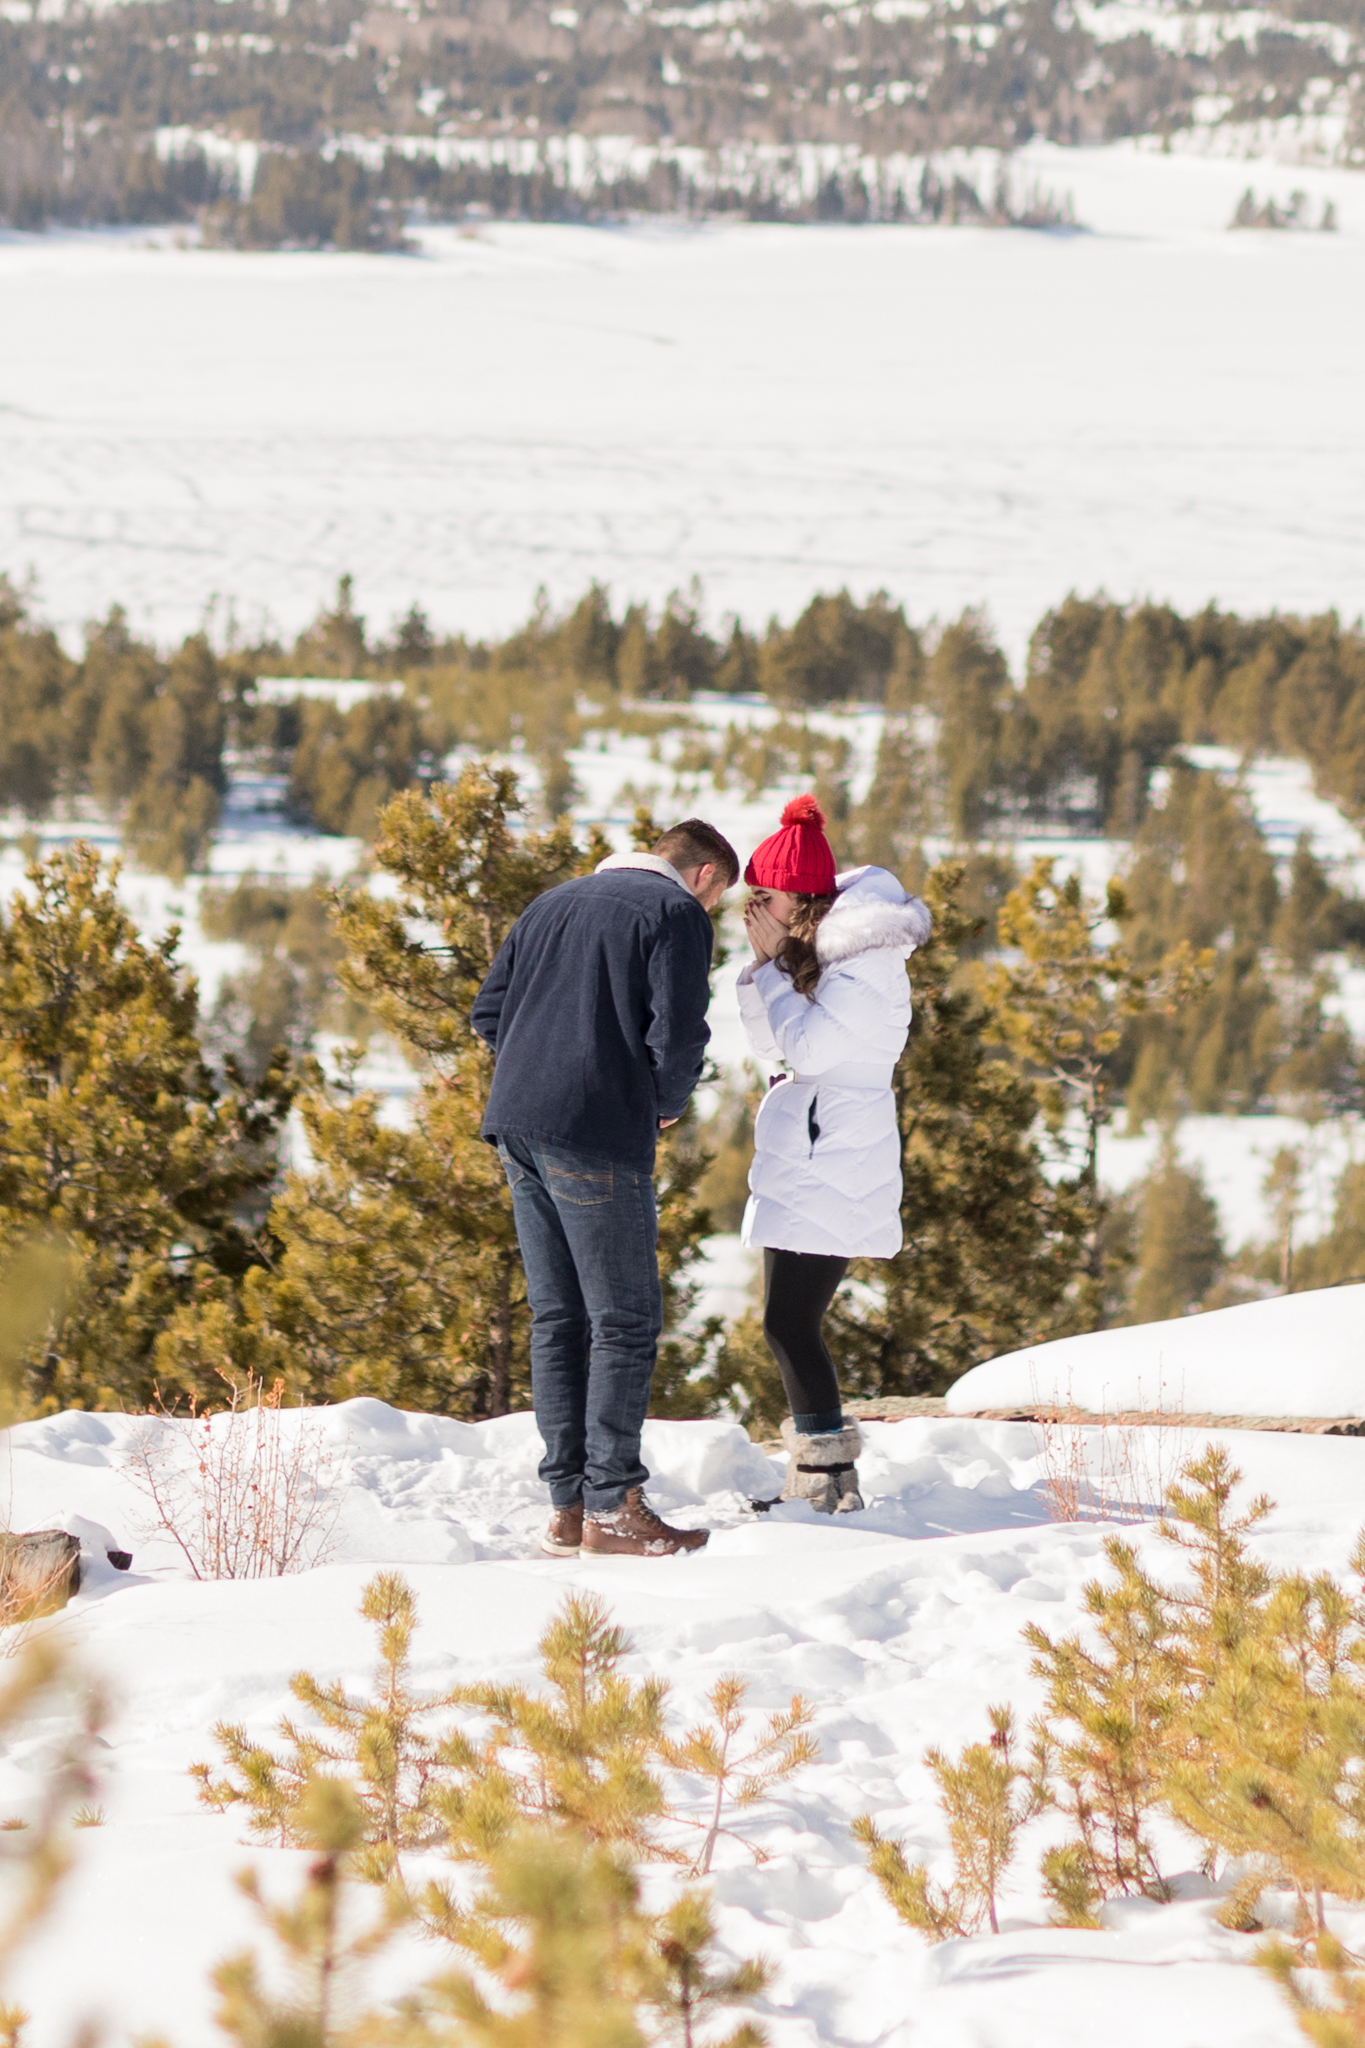 Tanner_and_Bryanna_Breckenridge_Proposal-3